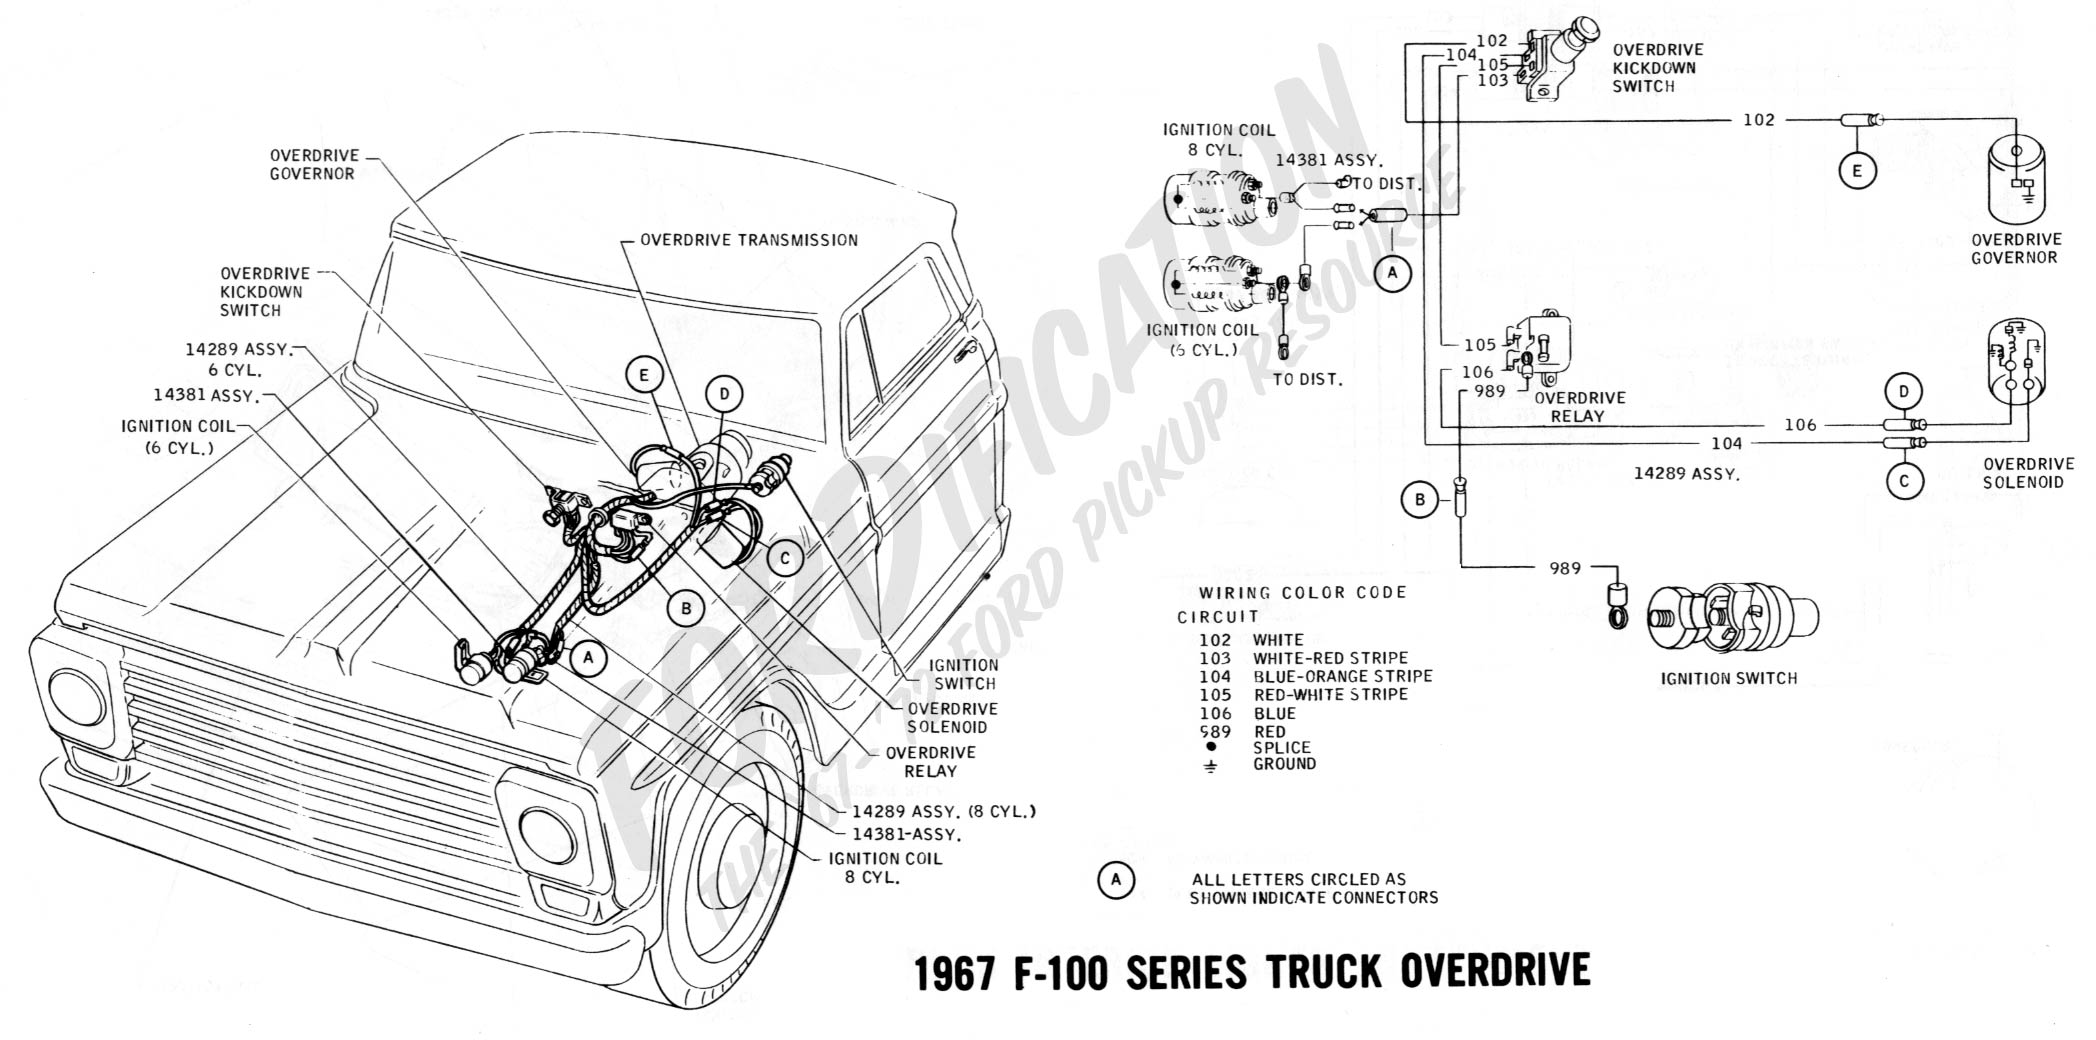 1965 F100 Fuse Box Ford Thunderbird Wiring Diagram Online Rh 18 14 Lightandzaun De Fairlane Mustang Location